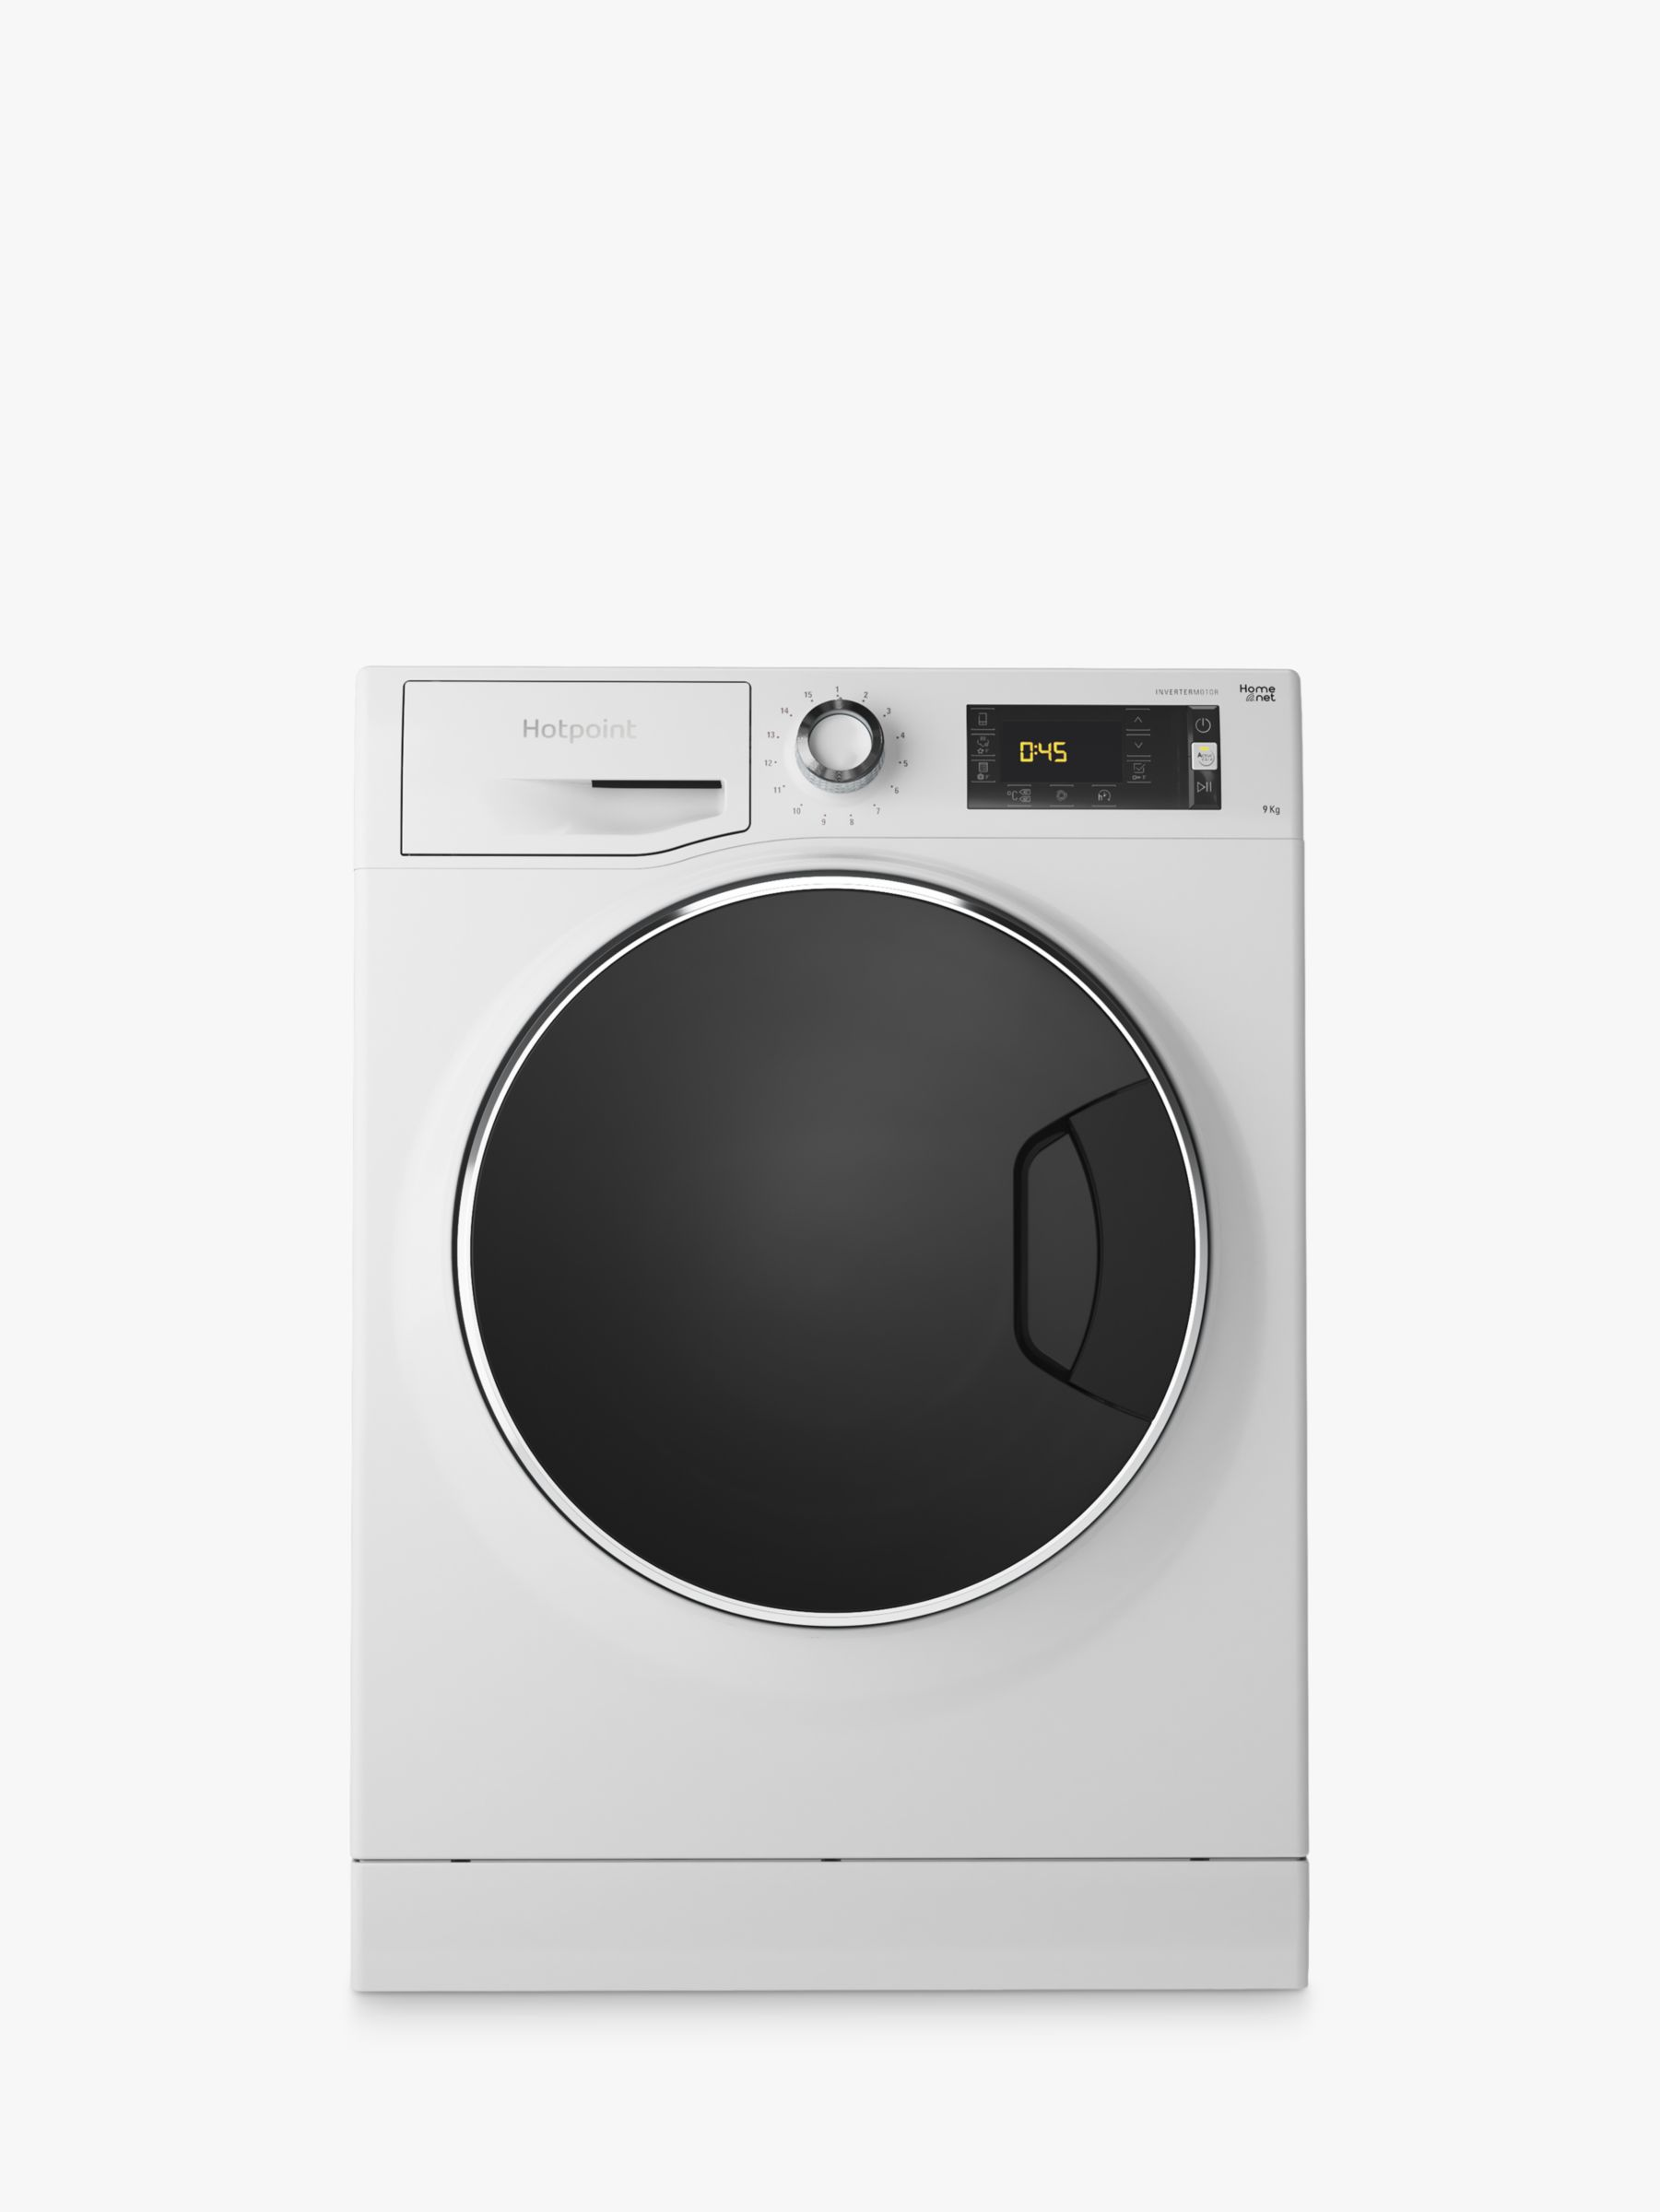 Hotpoint Hotpoint NLLCD947WDADWUK Freestanding Washing Machine, 9kg Load, 1400rpm, A+++ Energy Rating, White